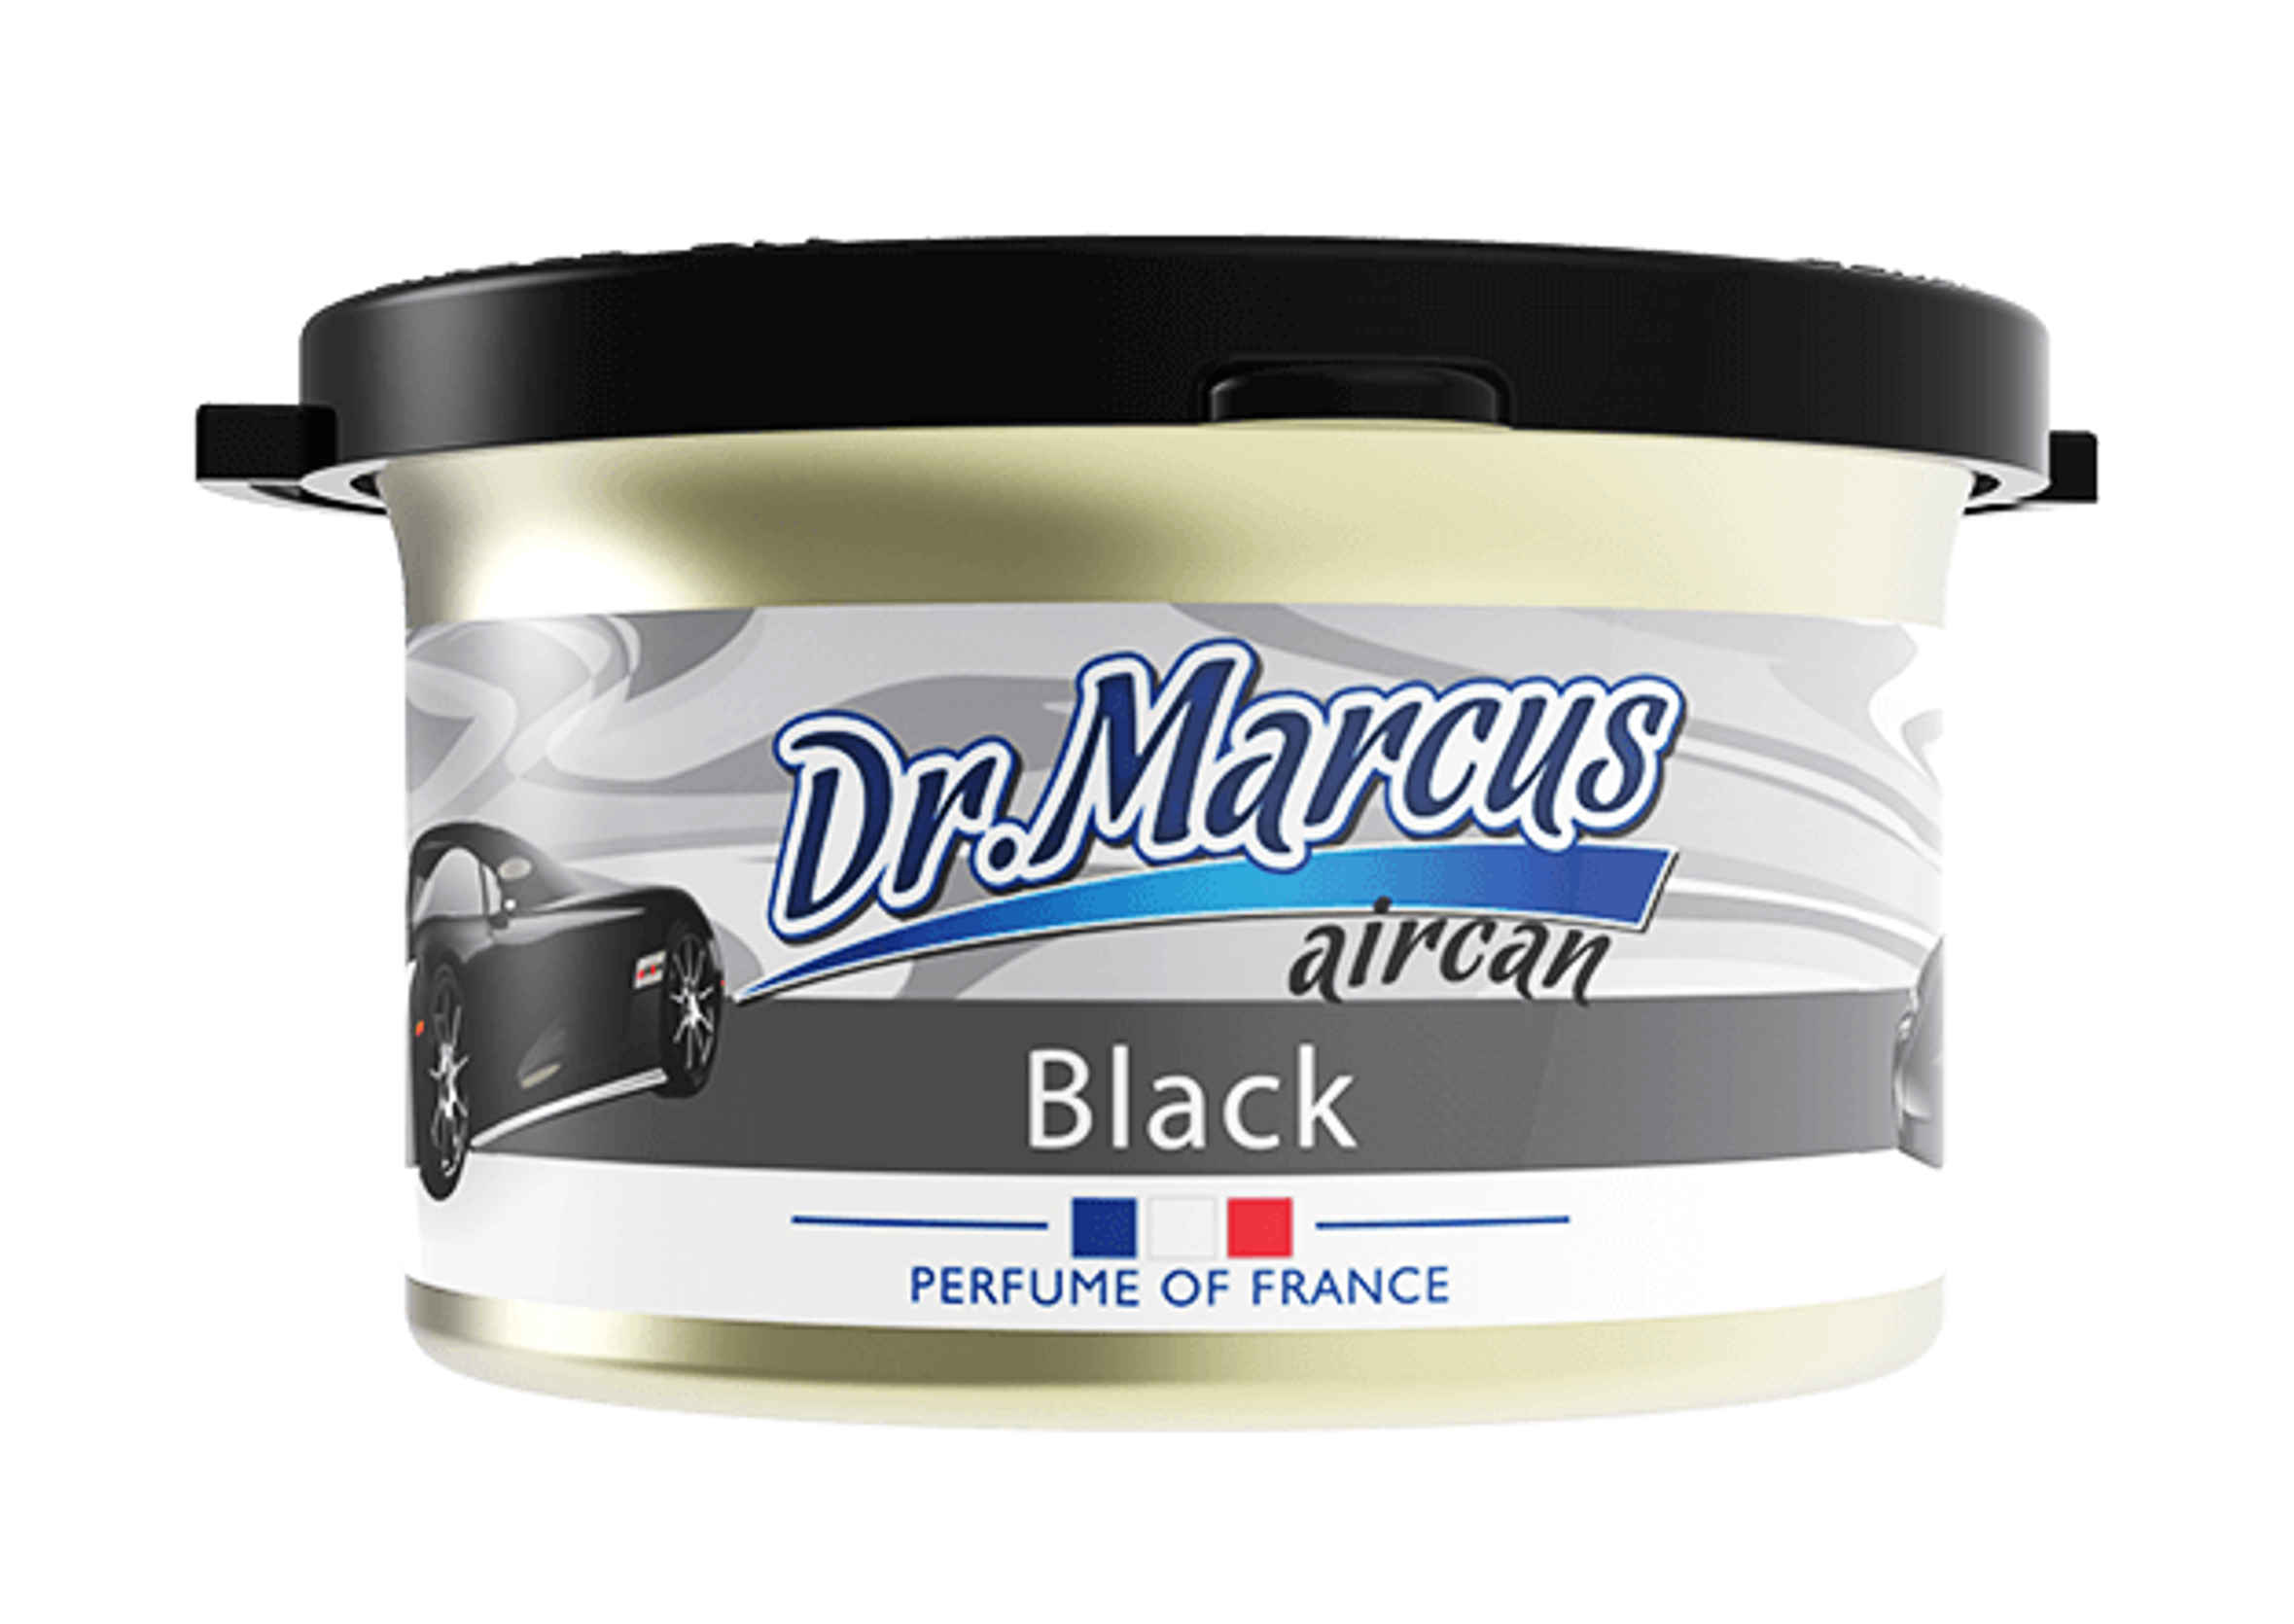 Dr Marcus Aircan 40g Zapach w formie puszki Black